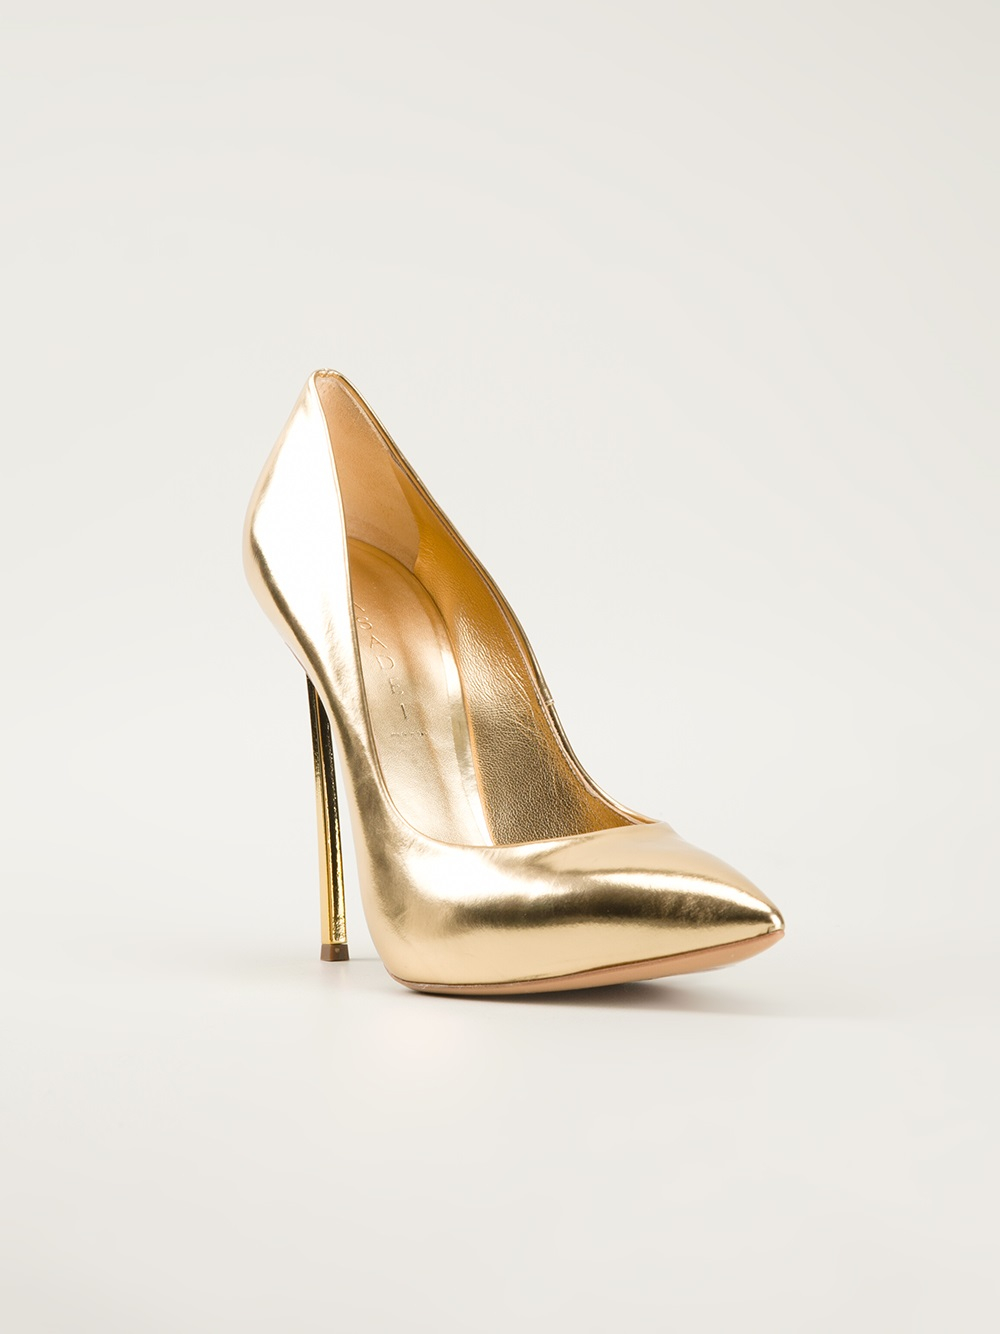 Gold Prom Shoes and Dress Shoes in Gold. Gold shoes bring a regal elegance to any prom dress or evening gown. With a Greek goddess-like feel, gold sandals and high heeled prom shoes in gold complement prom dresses of any color, from black to red and green.